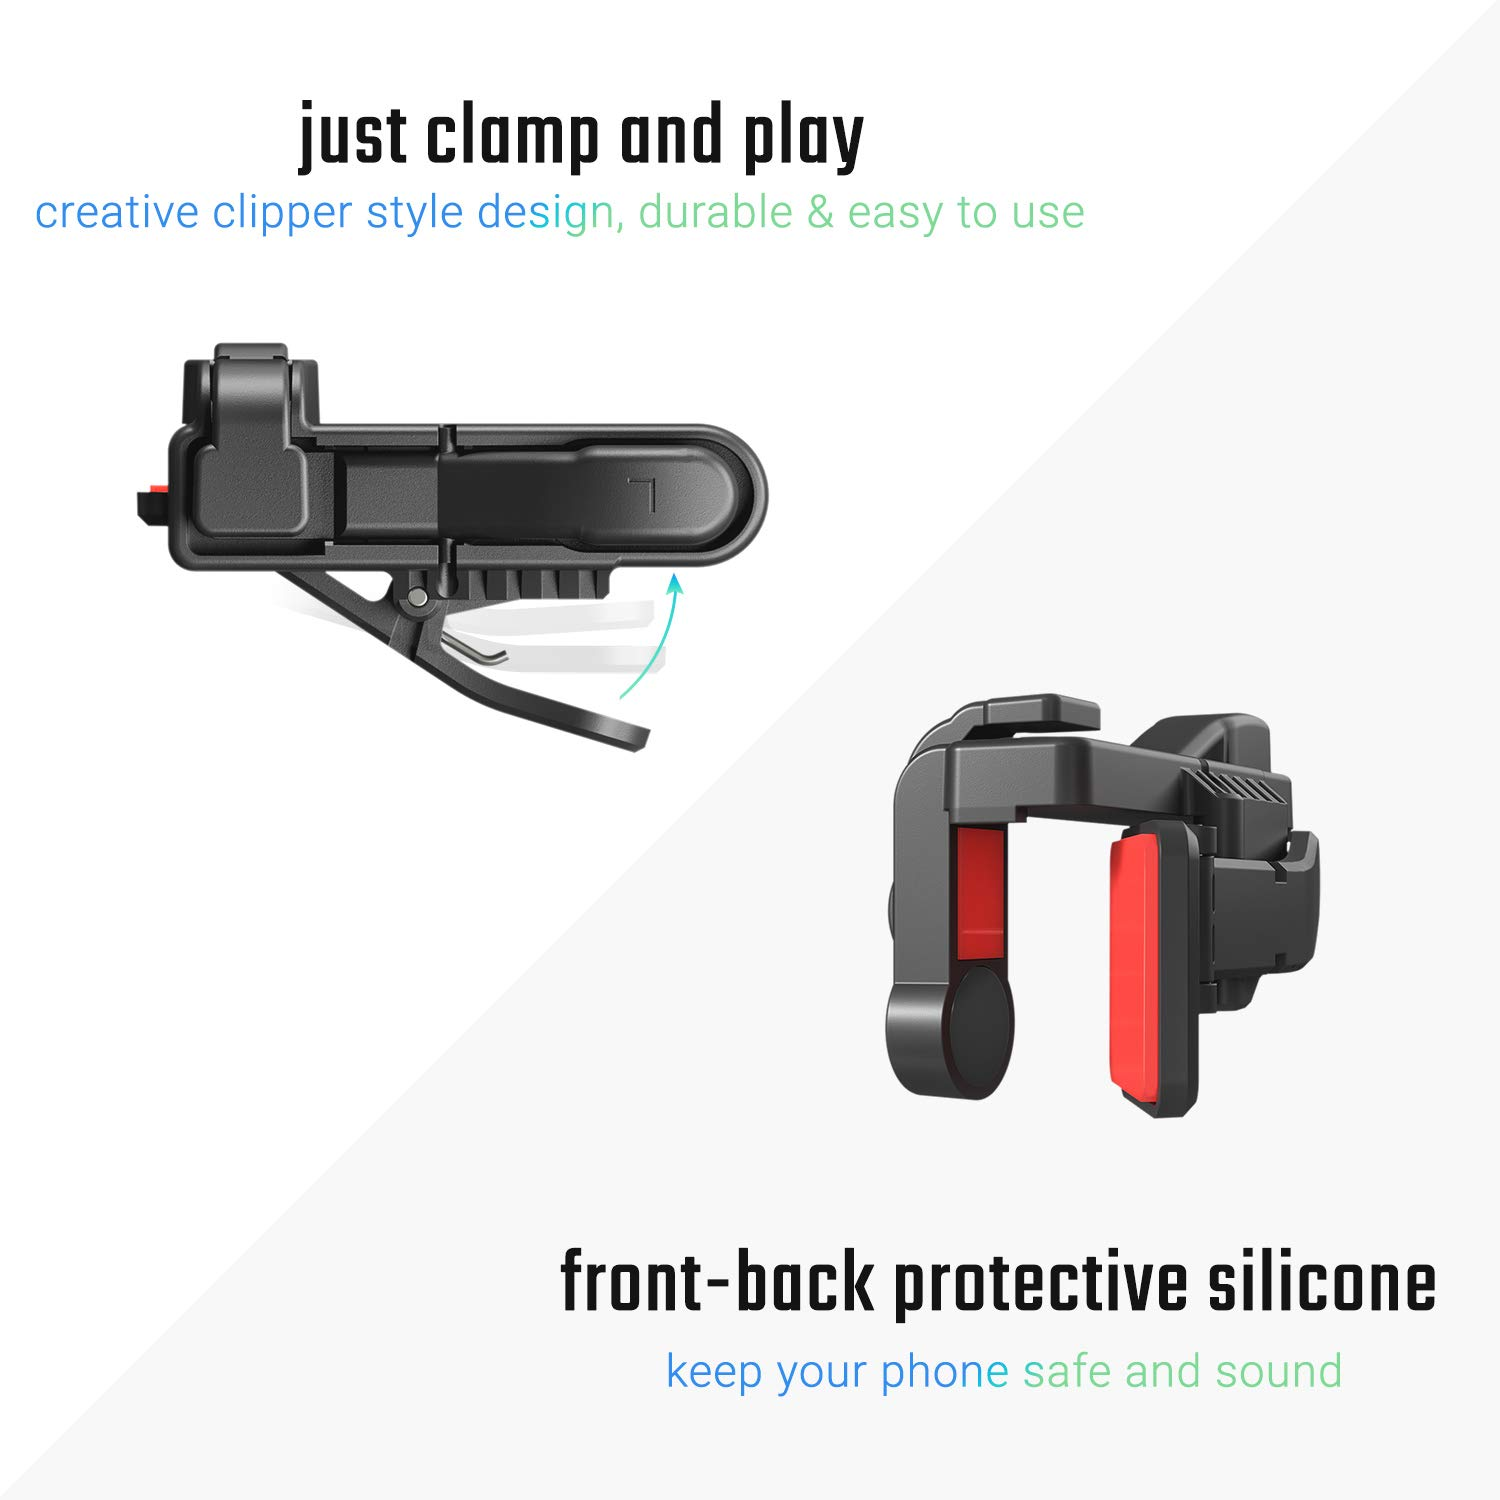 [ELITE Edition]Leuna Mobile Game Controller L1R1 Game Triggers Fire and Aim  Buttons for PUBG for Fortnite for iPhone SE 6 7 8 X Xs XR/Samsung Note 8 9